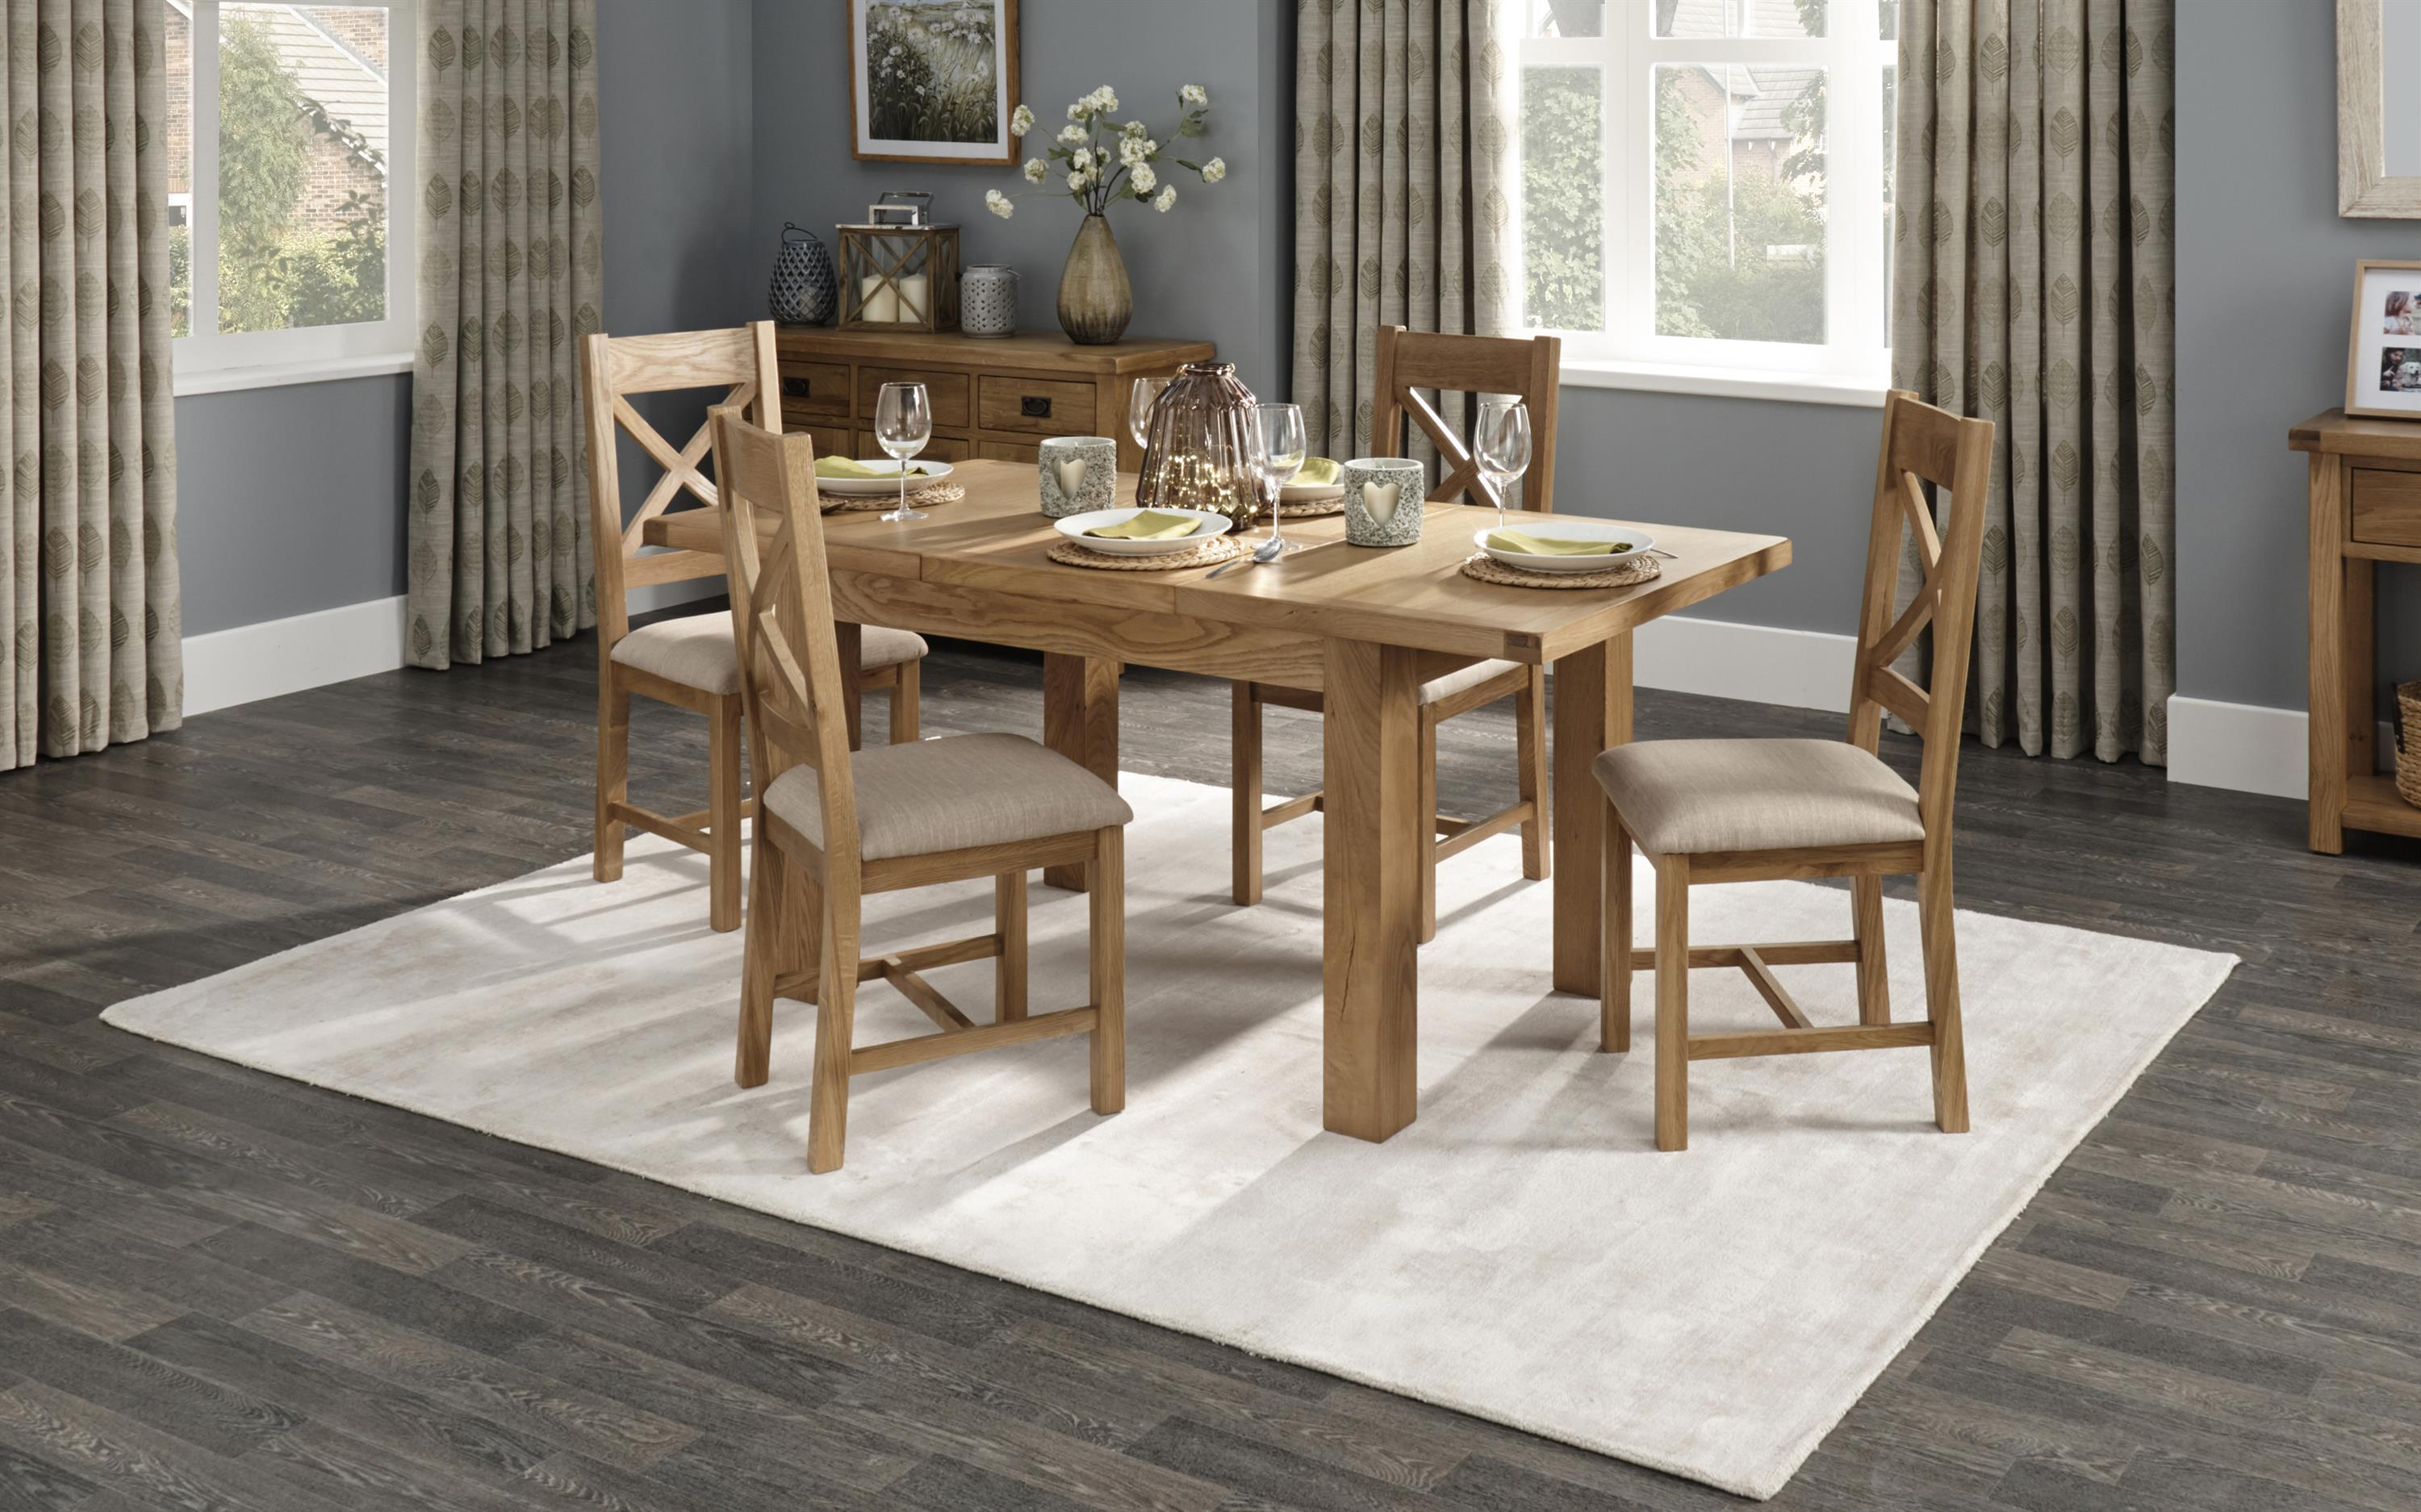 Cruz 1.25m Extending Dining Table & 4 Cross Back Chairs